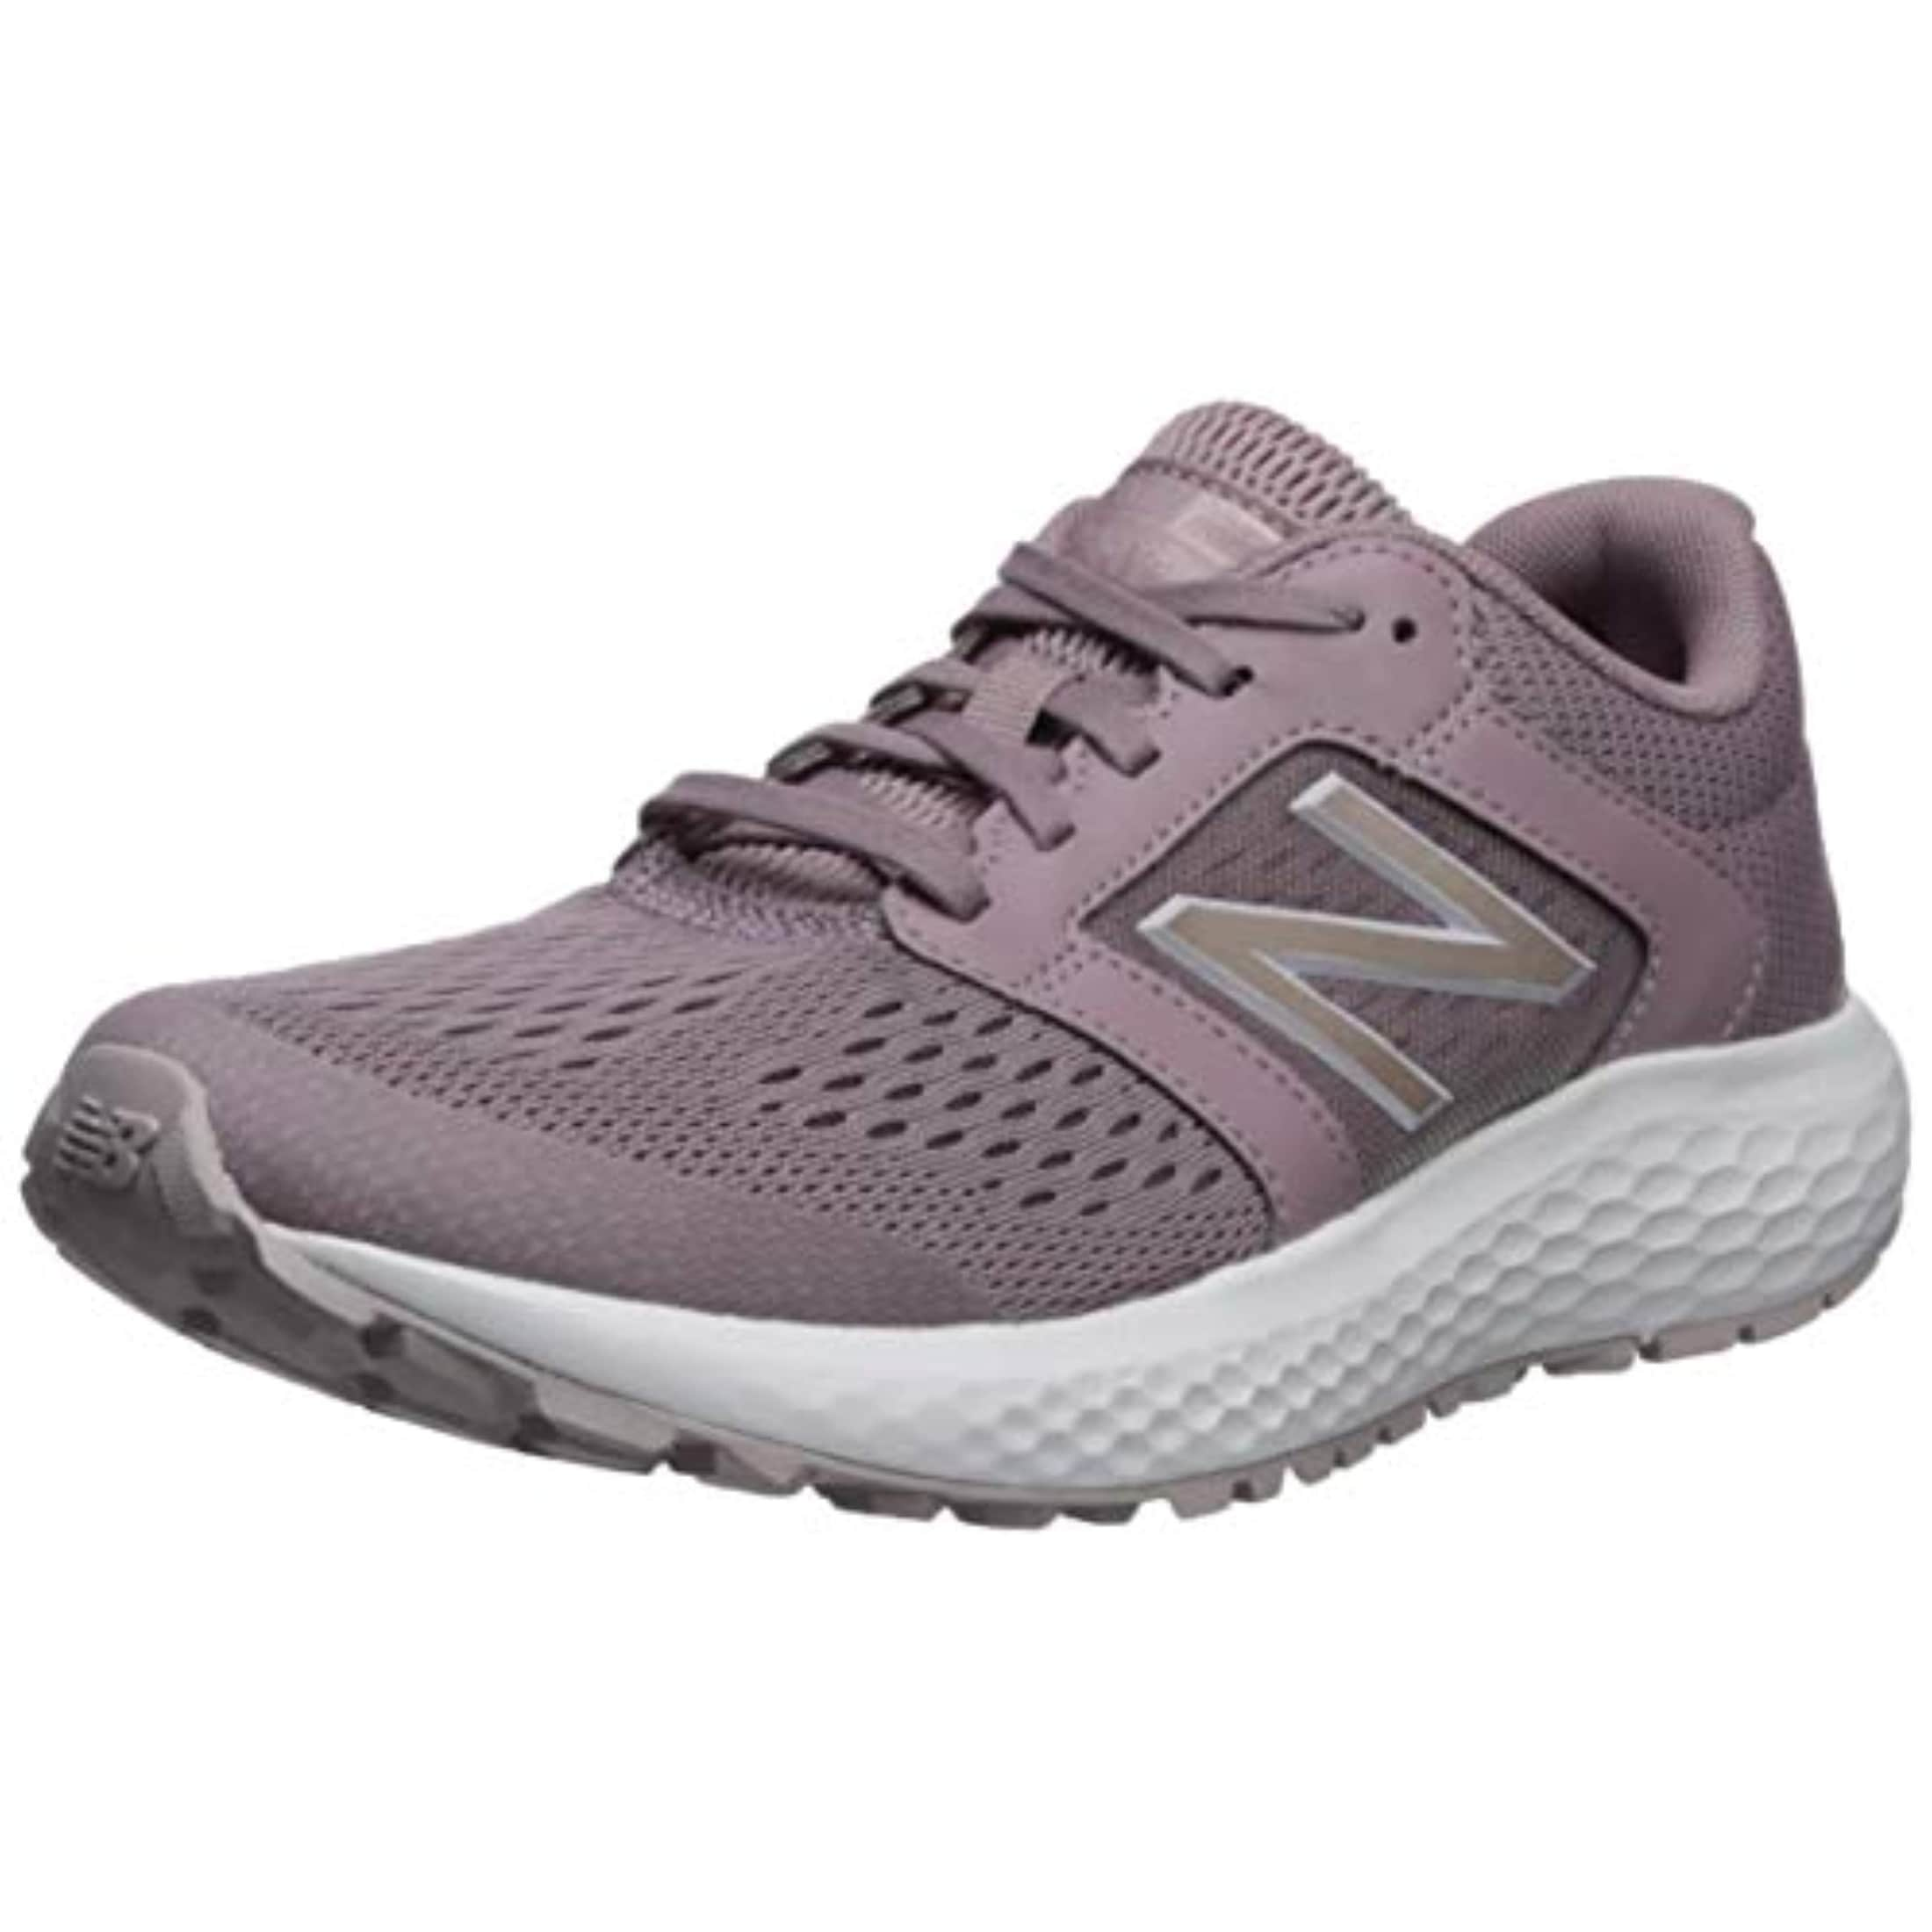 7586584c743d2 New Balance Shoes | Shop our Best Clothing & Shoes Deals Online at Overstock